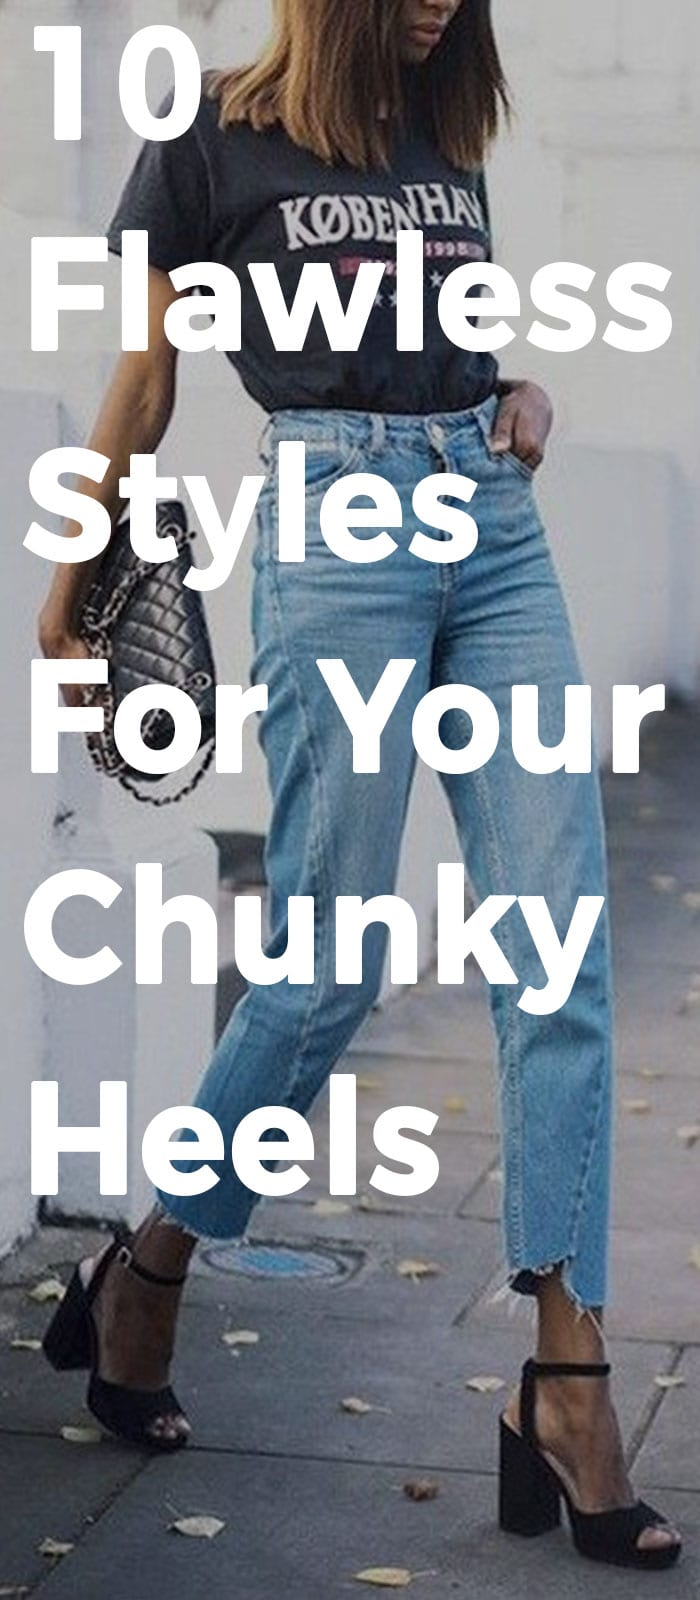 10 Flawless Styles For Your Chunky Heels.